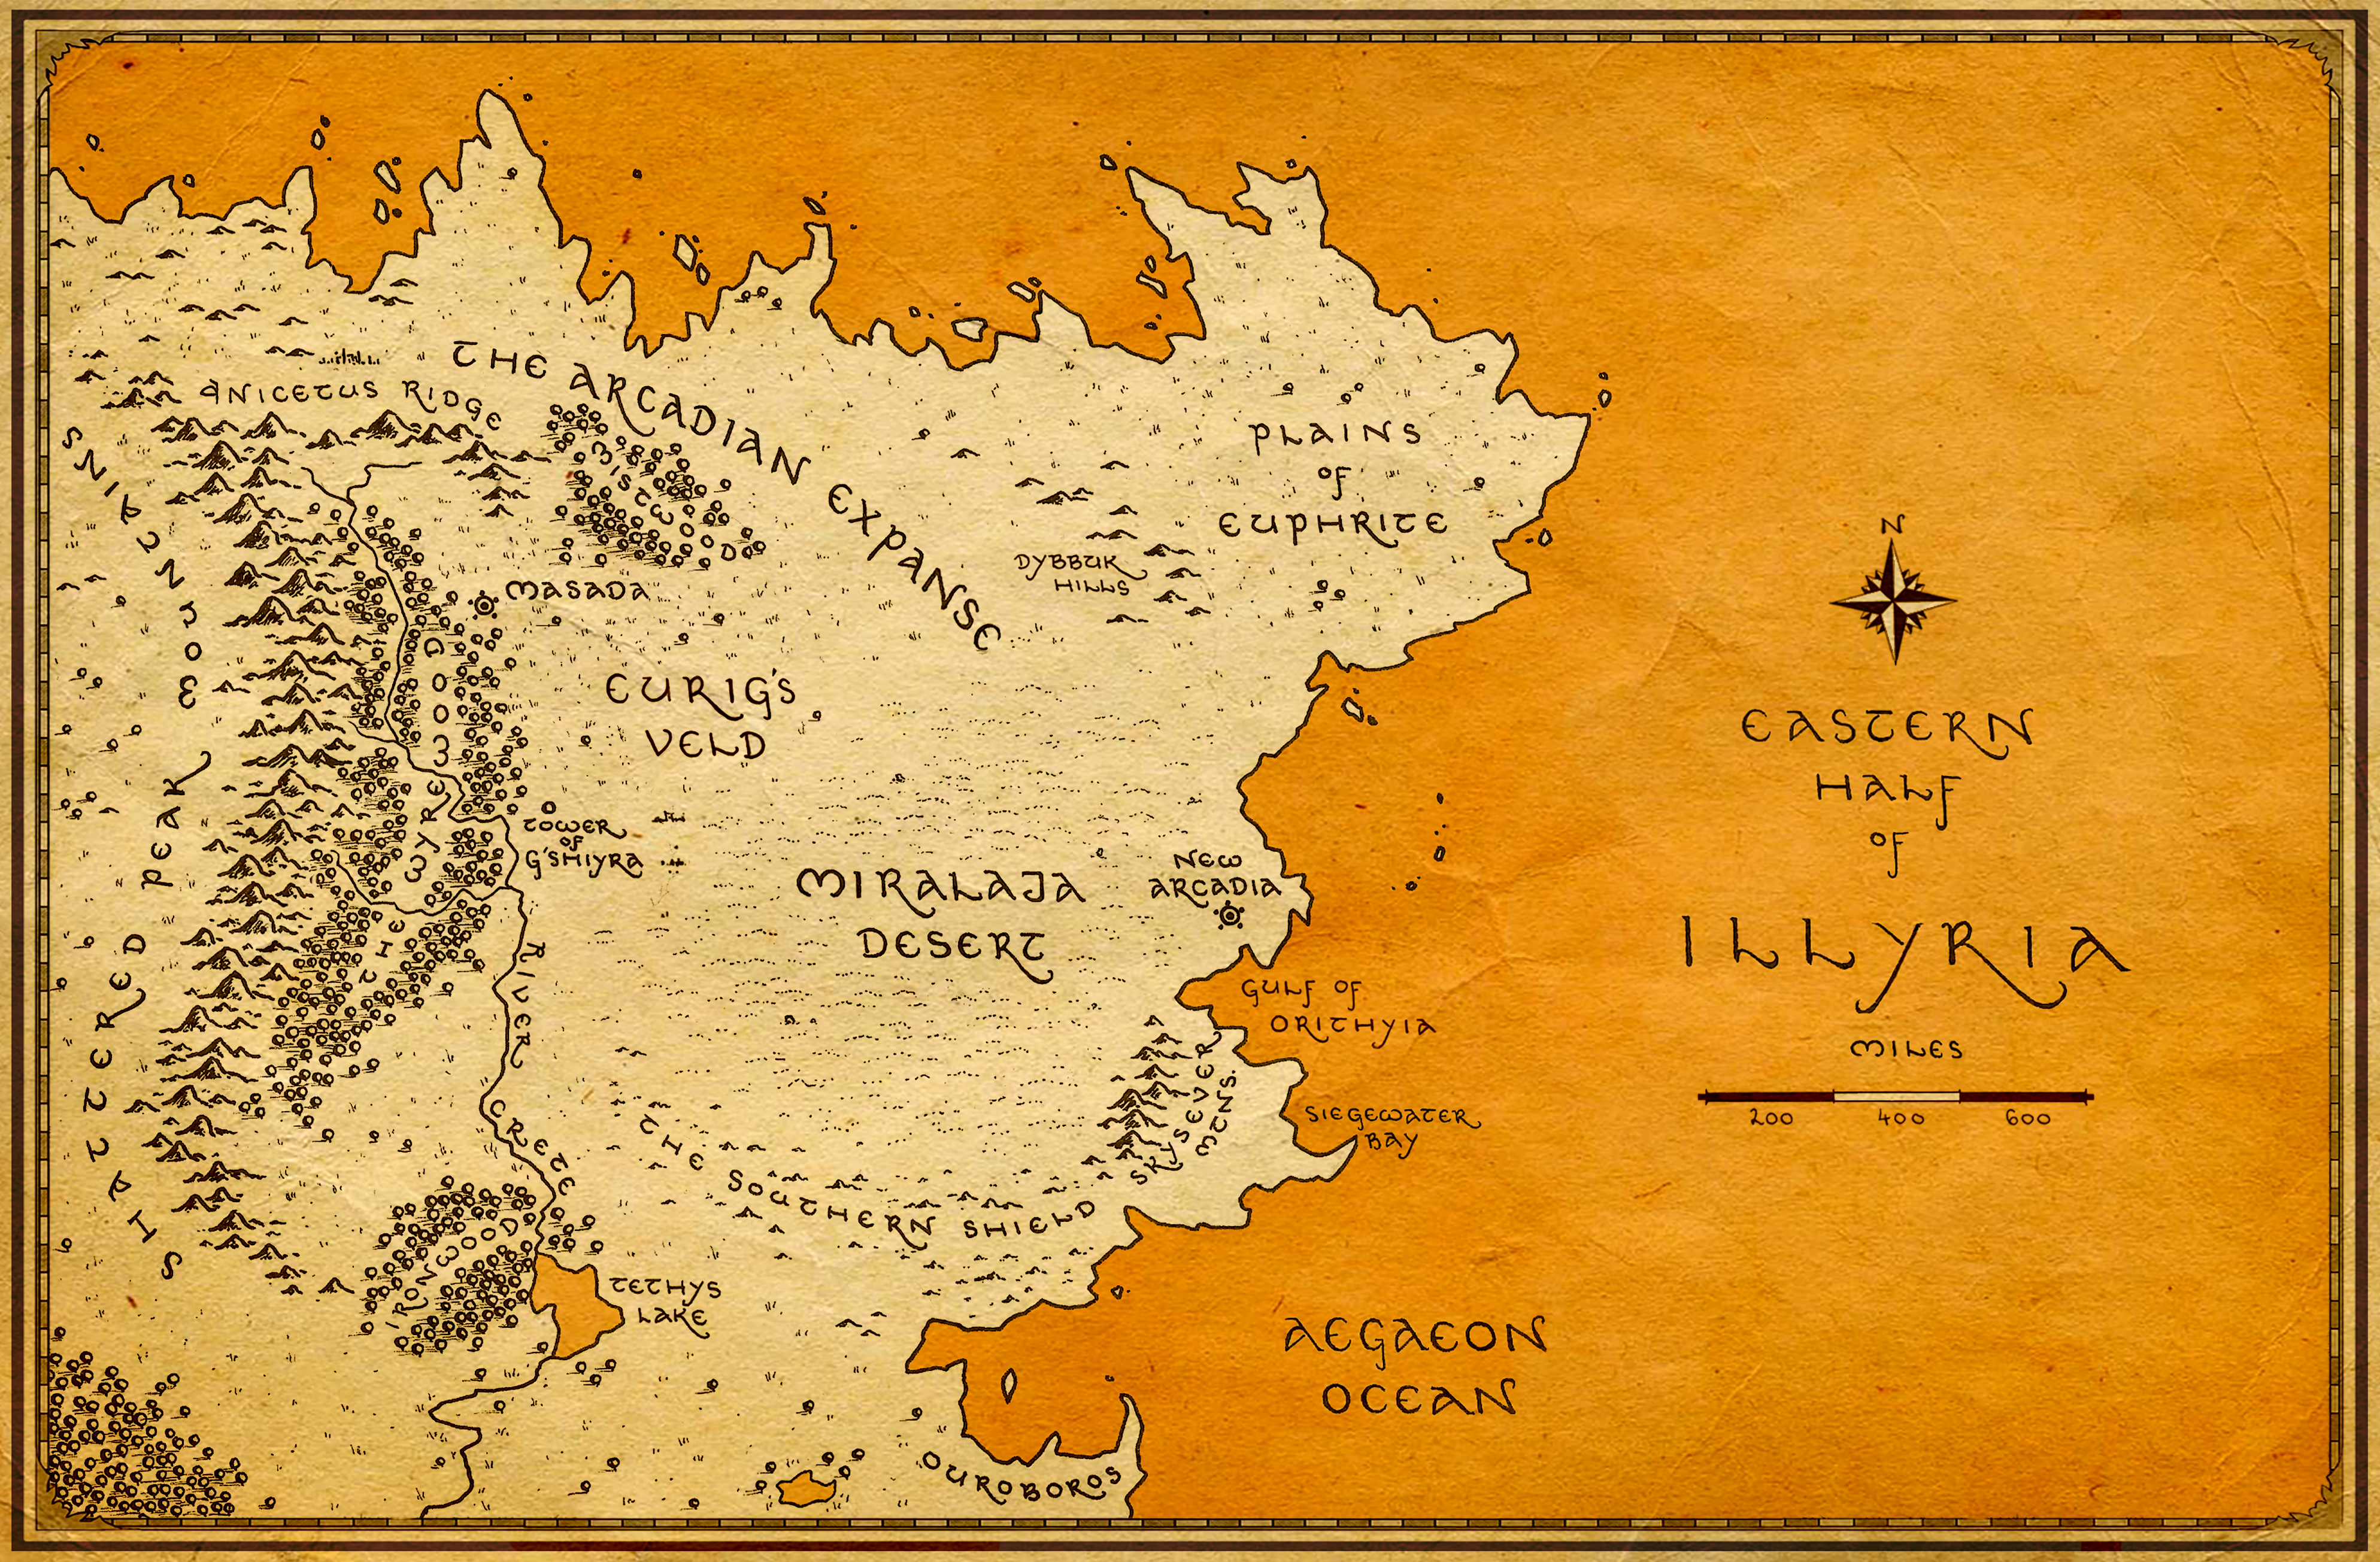 Final Artwork for the Eastern Half of Illyria